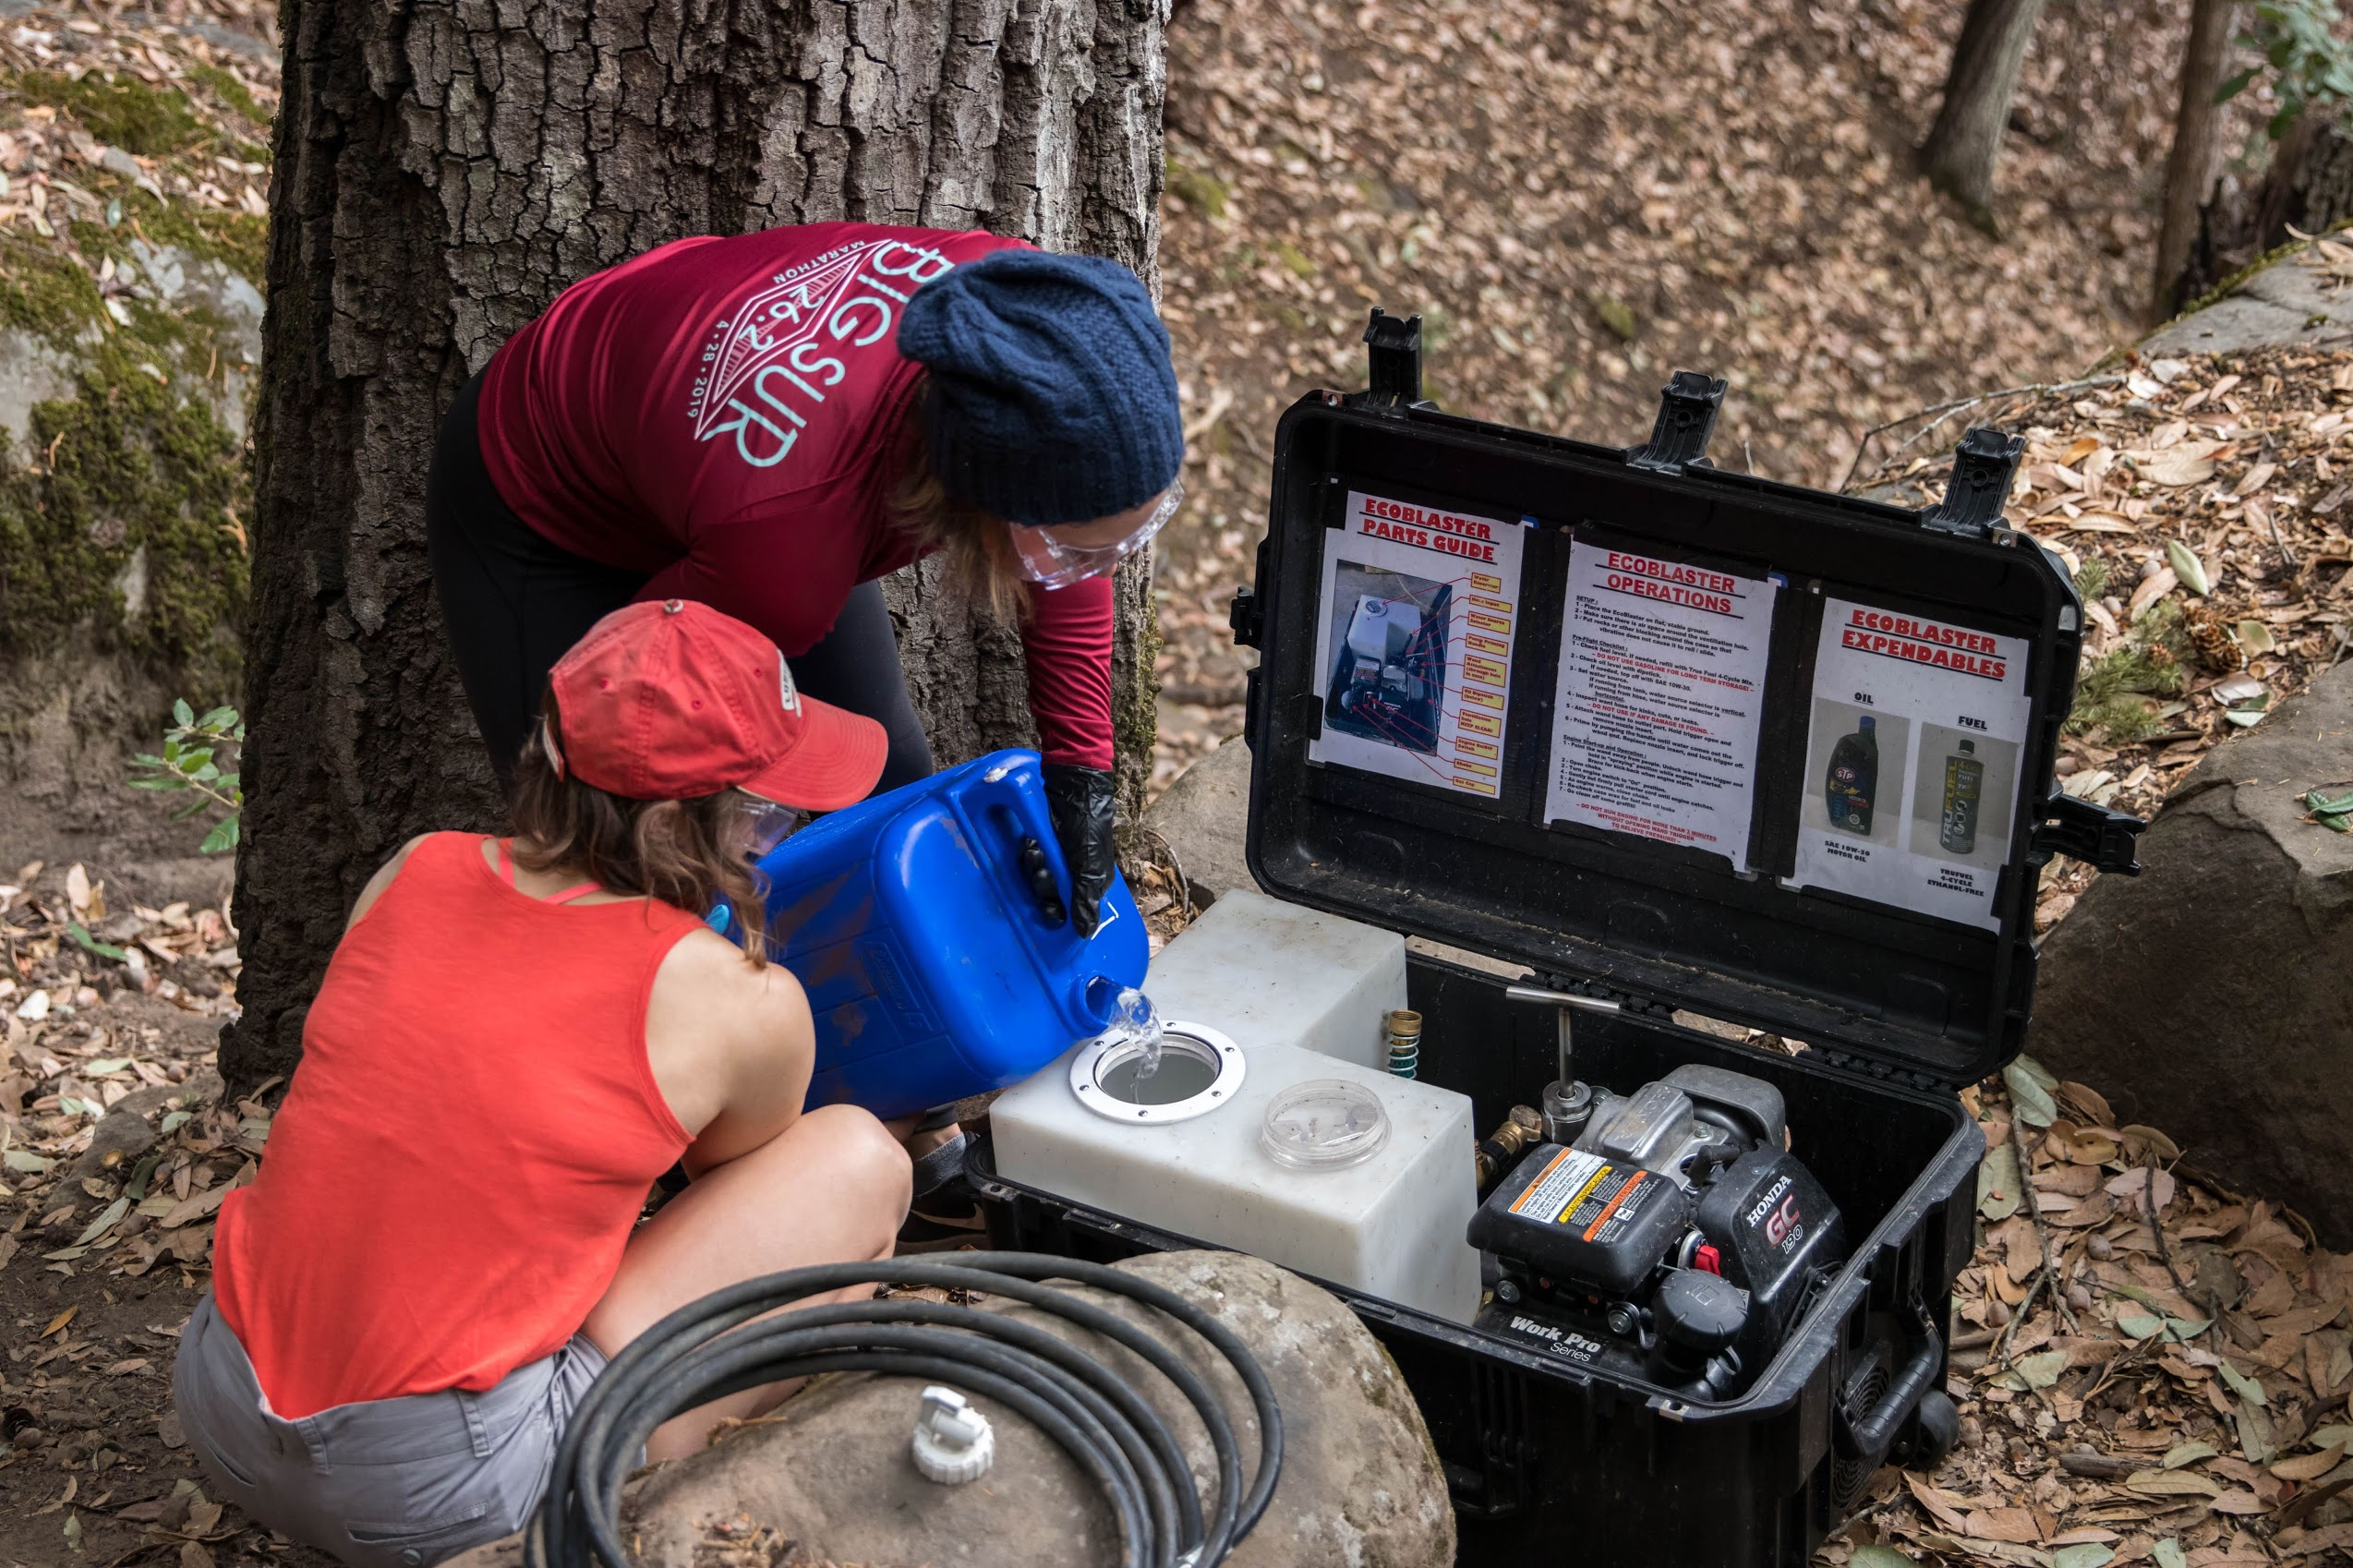 two volunteers ready the EcoBlaster pressure washer by adding water to its tank